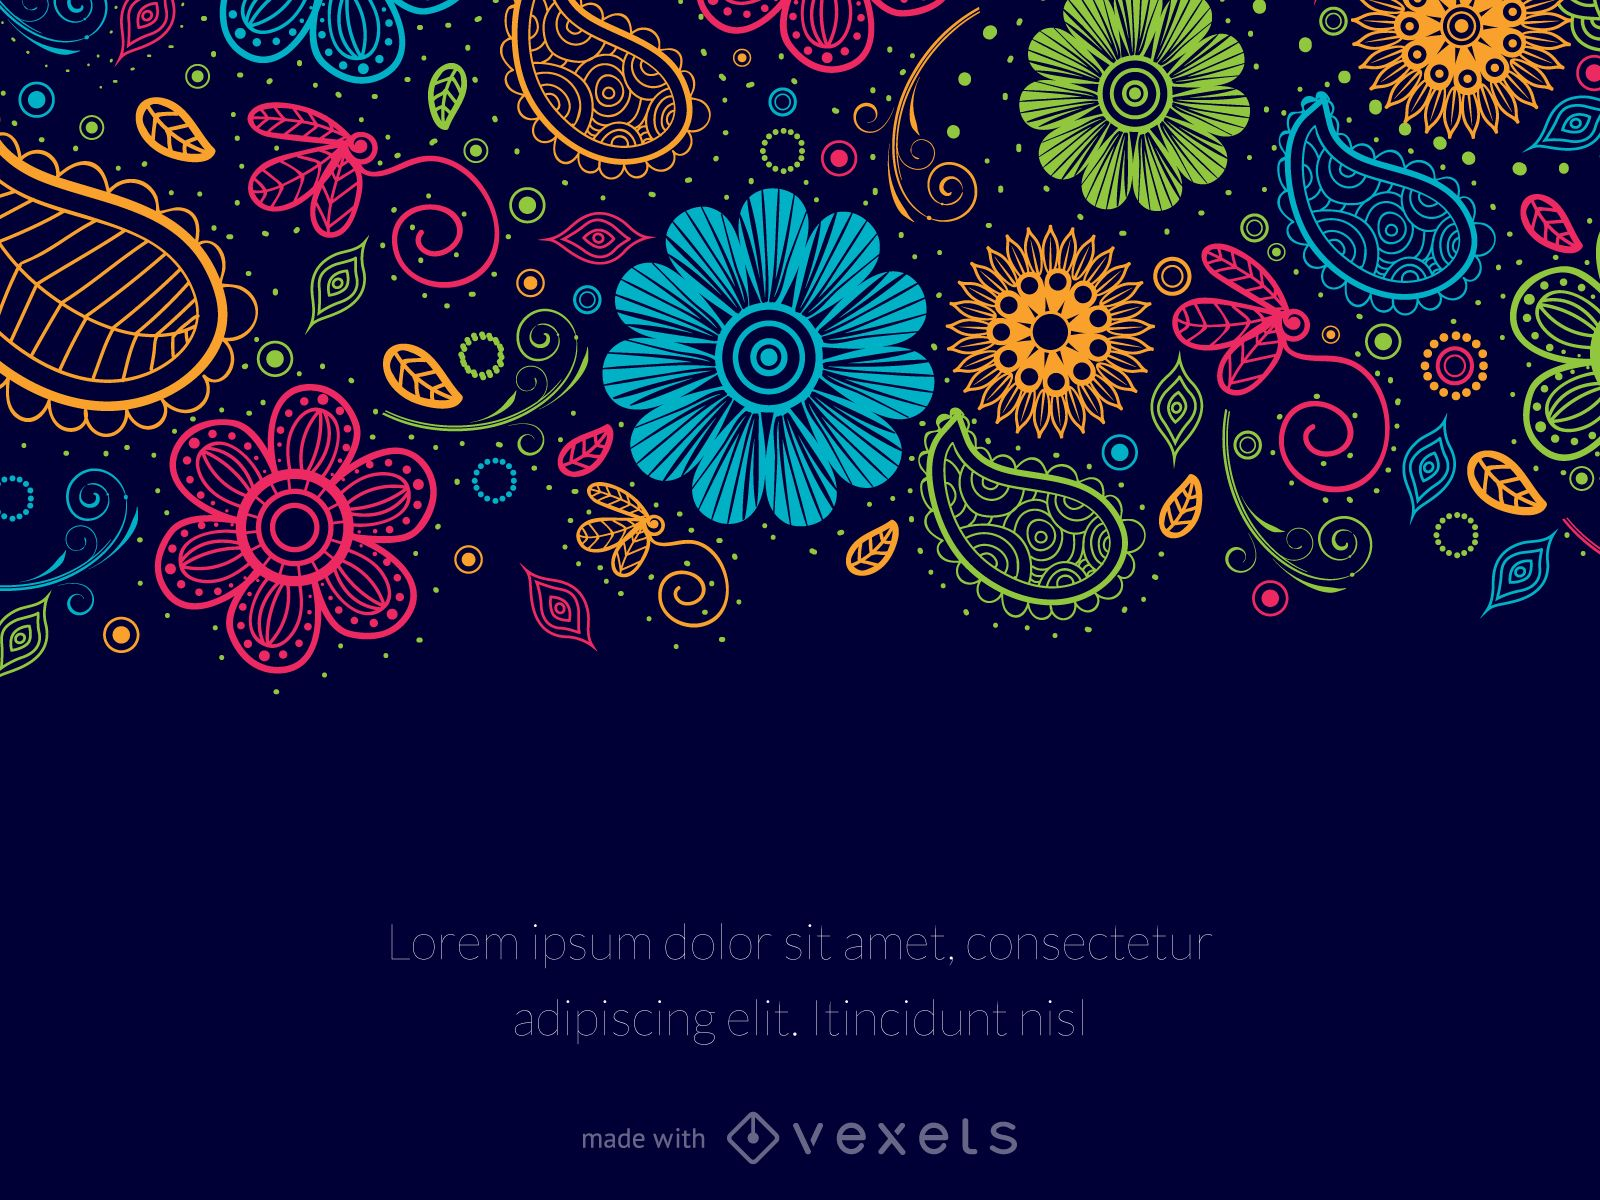 Paisley floral message editor editable design download large image 1600x1200px izmirmasajfo